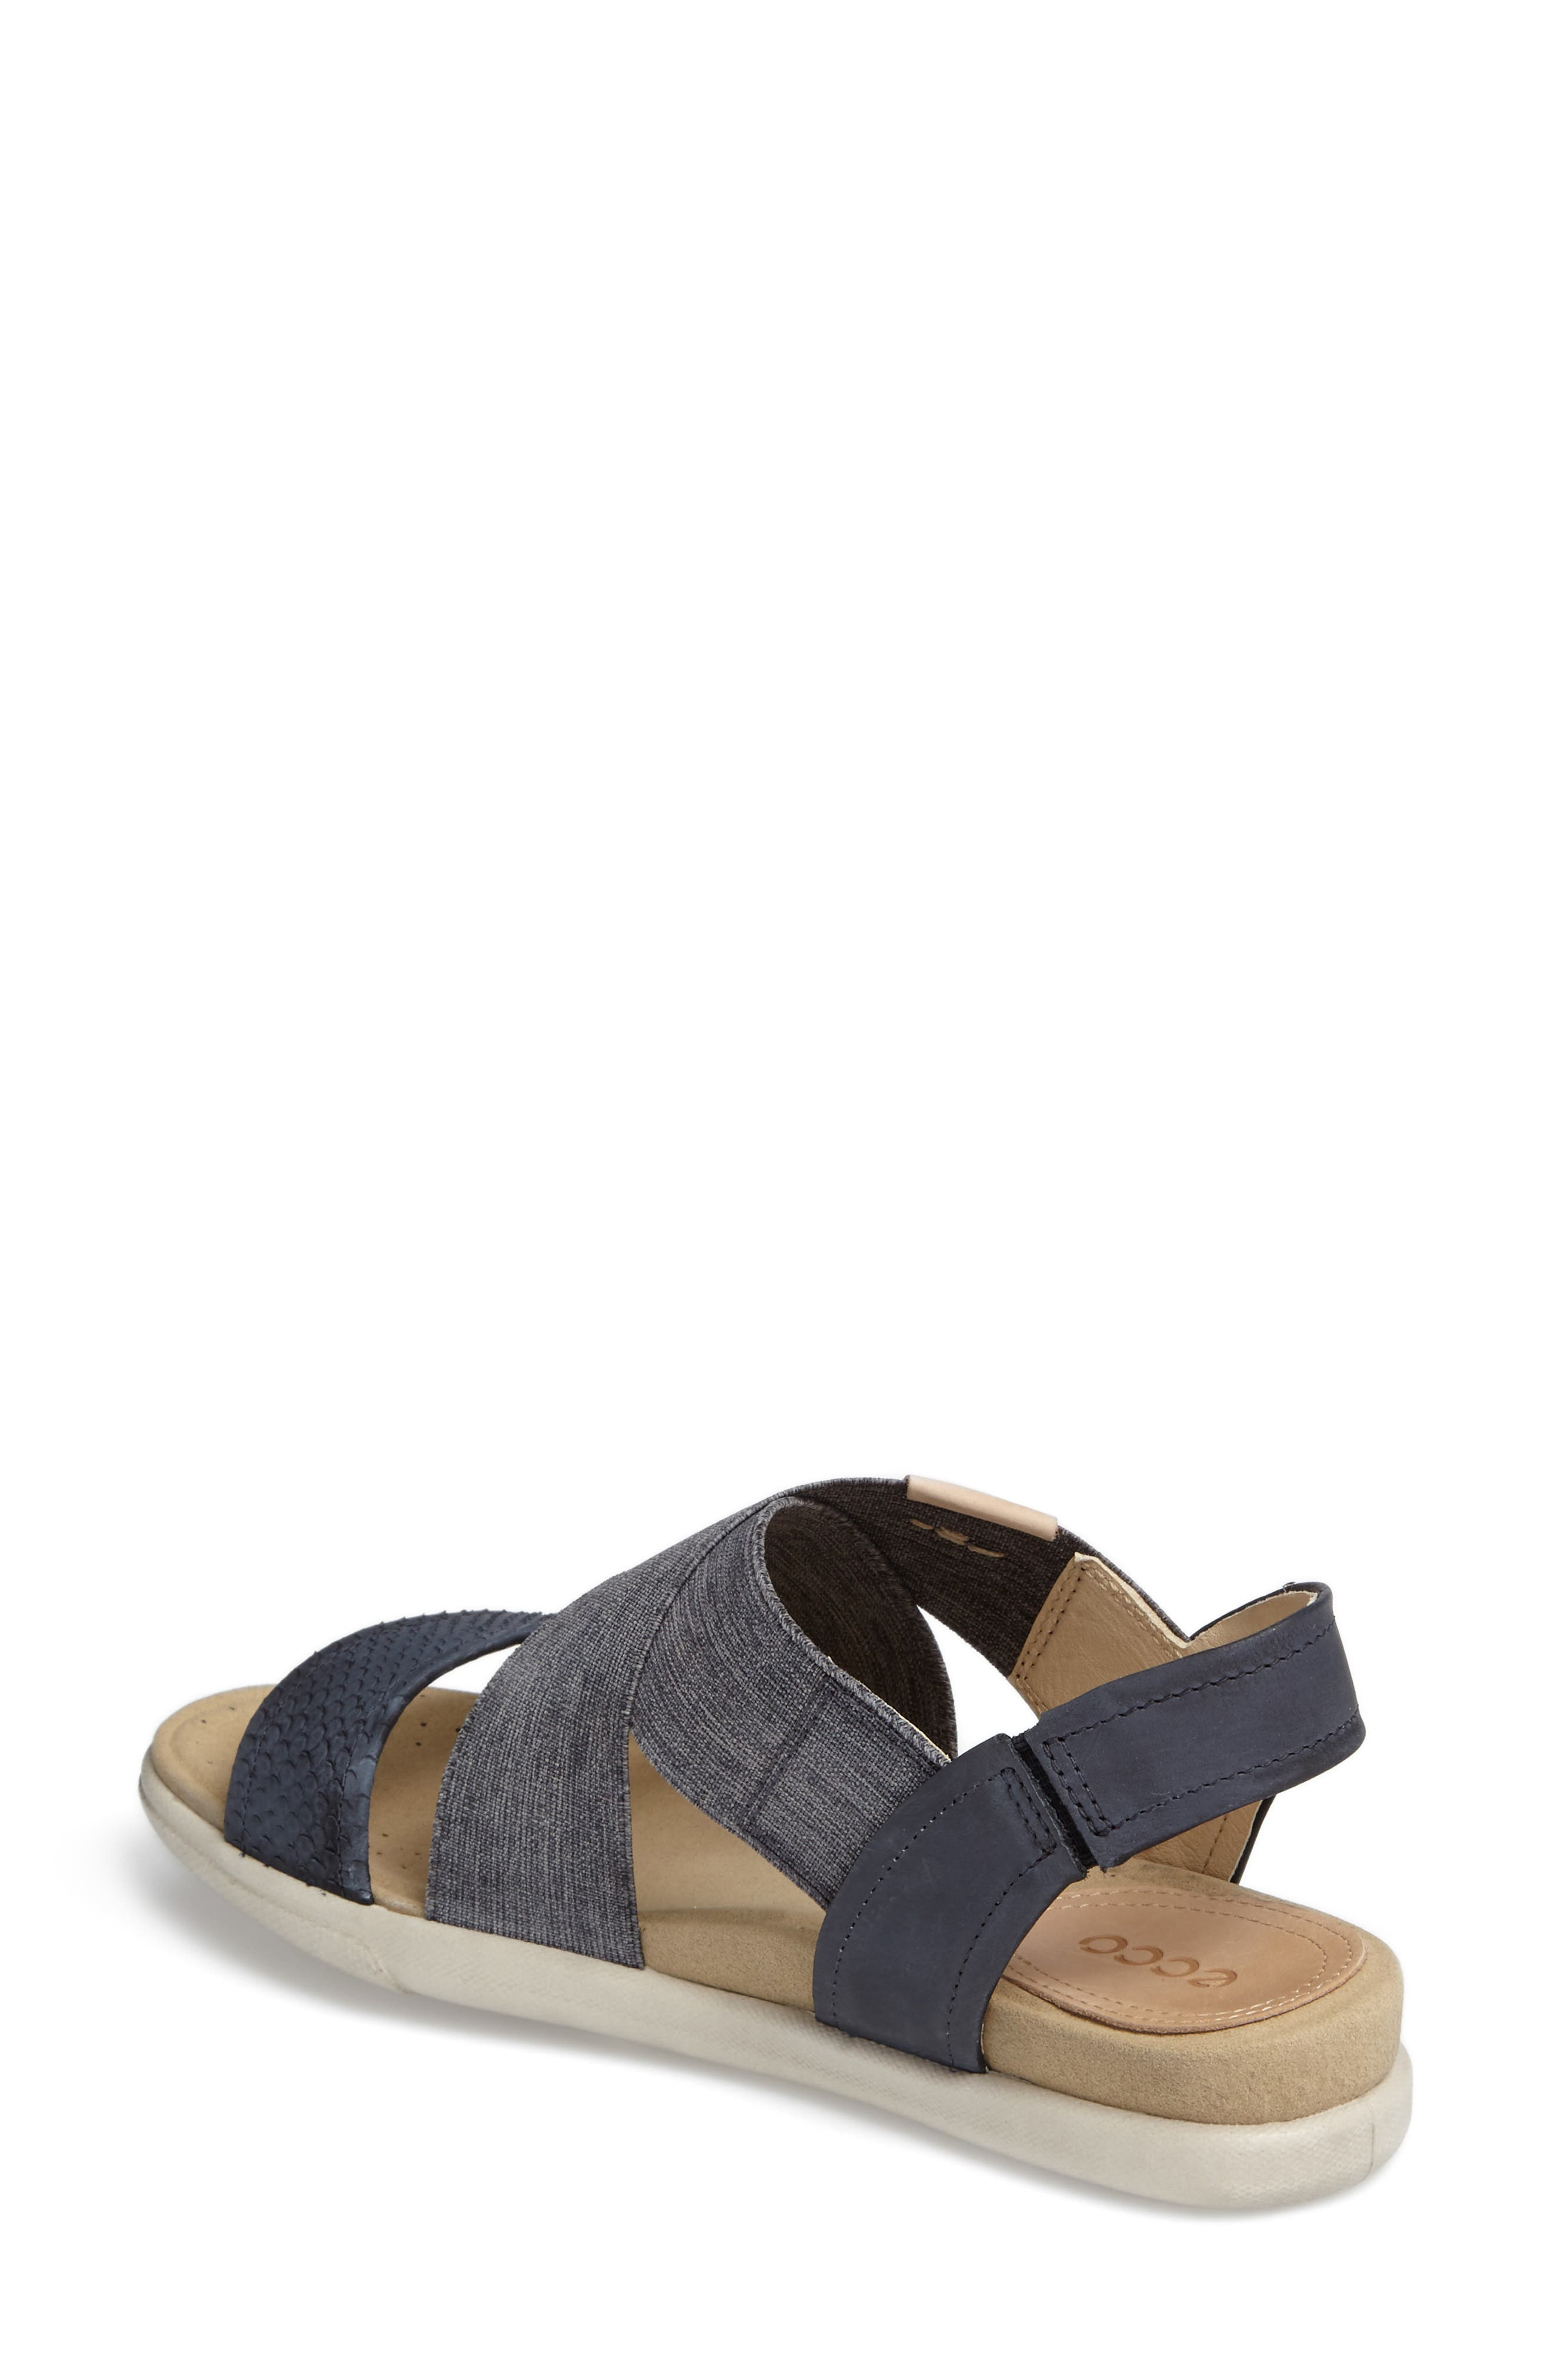 Damara Cross-Strap Sandal,                             Alternate thumbnail 12, color,